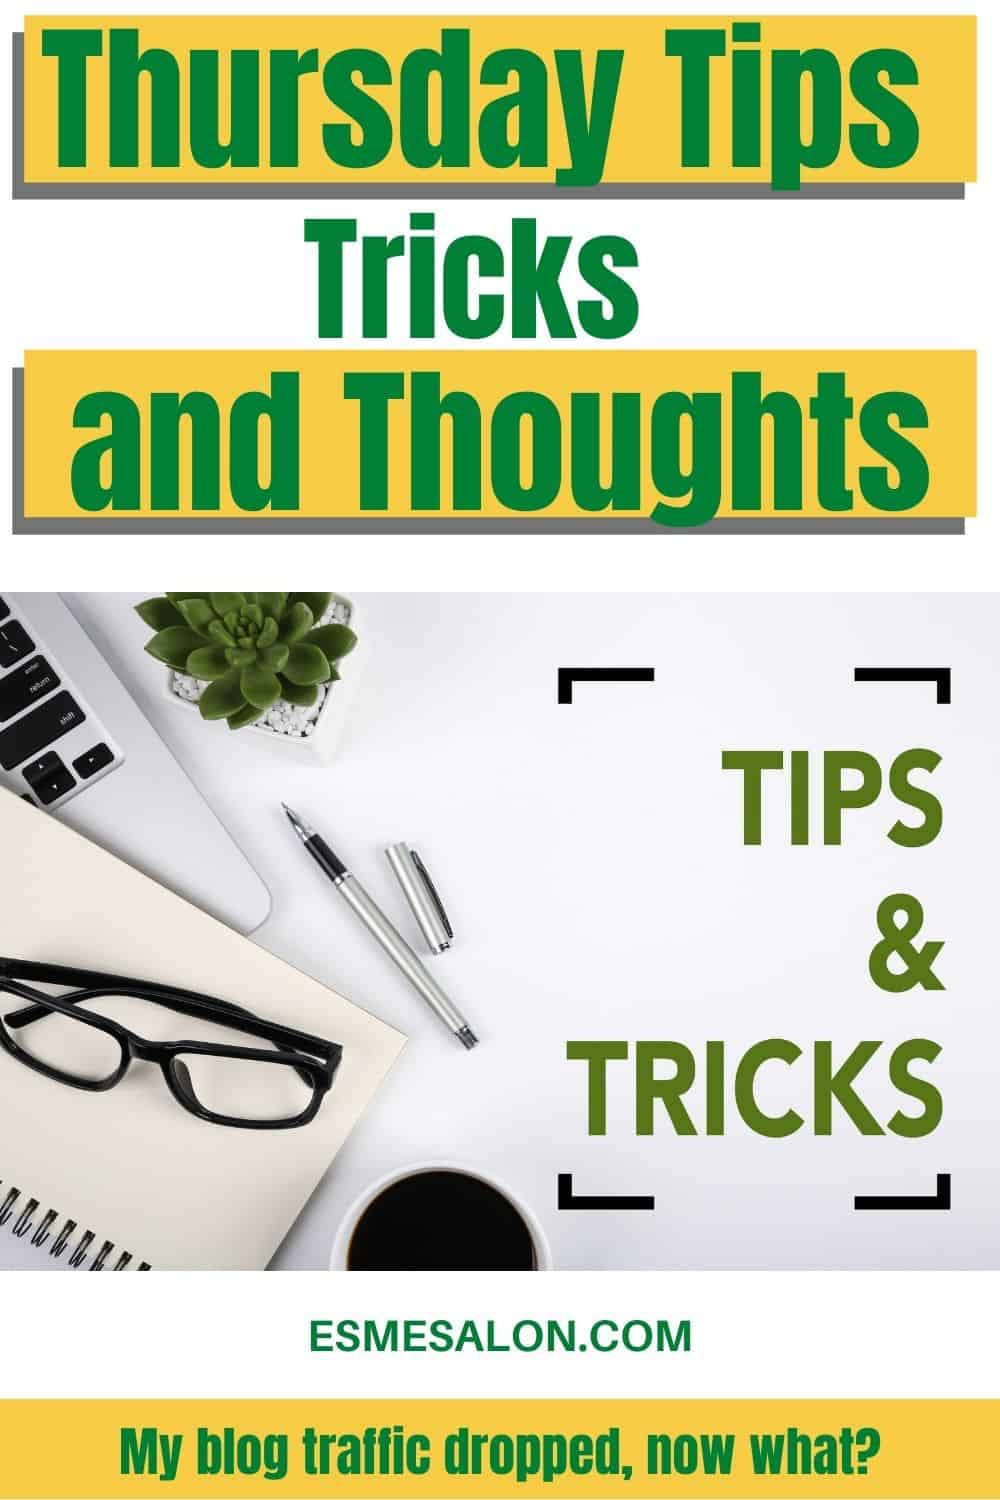 Tips and tricks to resolve drop in blog traffic